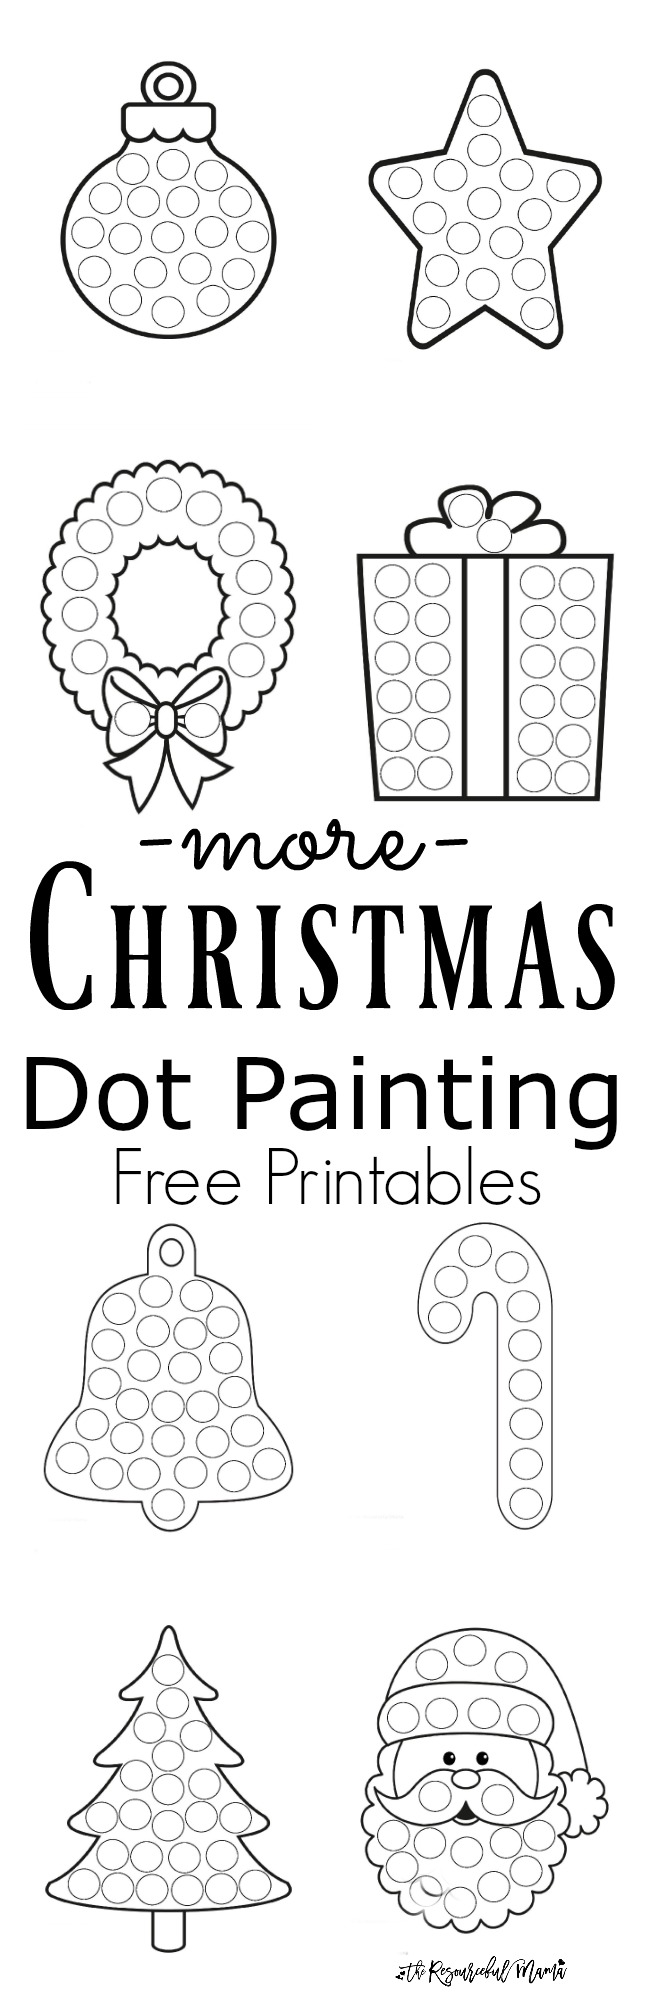 free printable christmas dot painting worksheets for kids these work great with do a dot